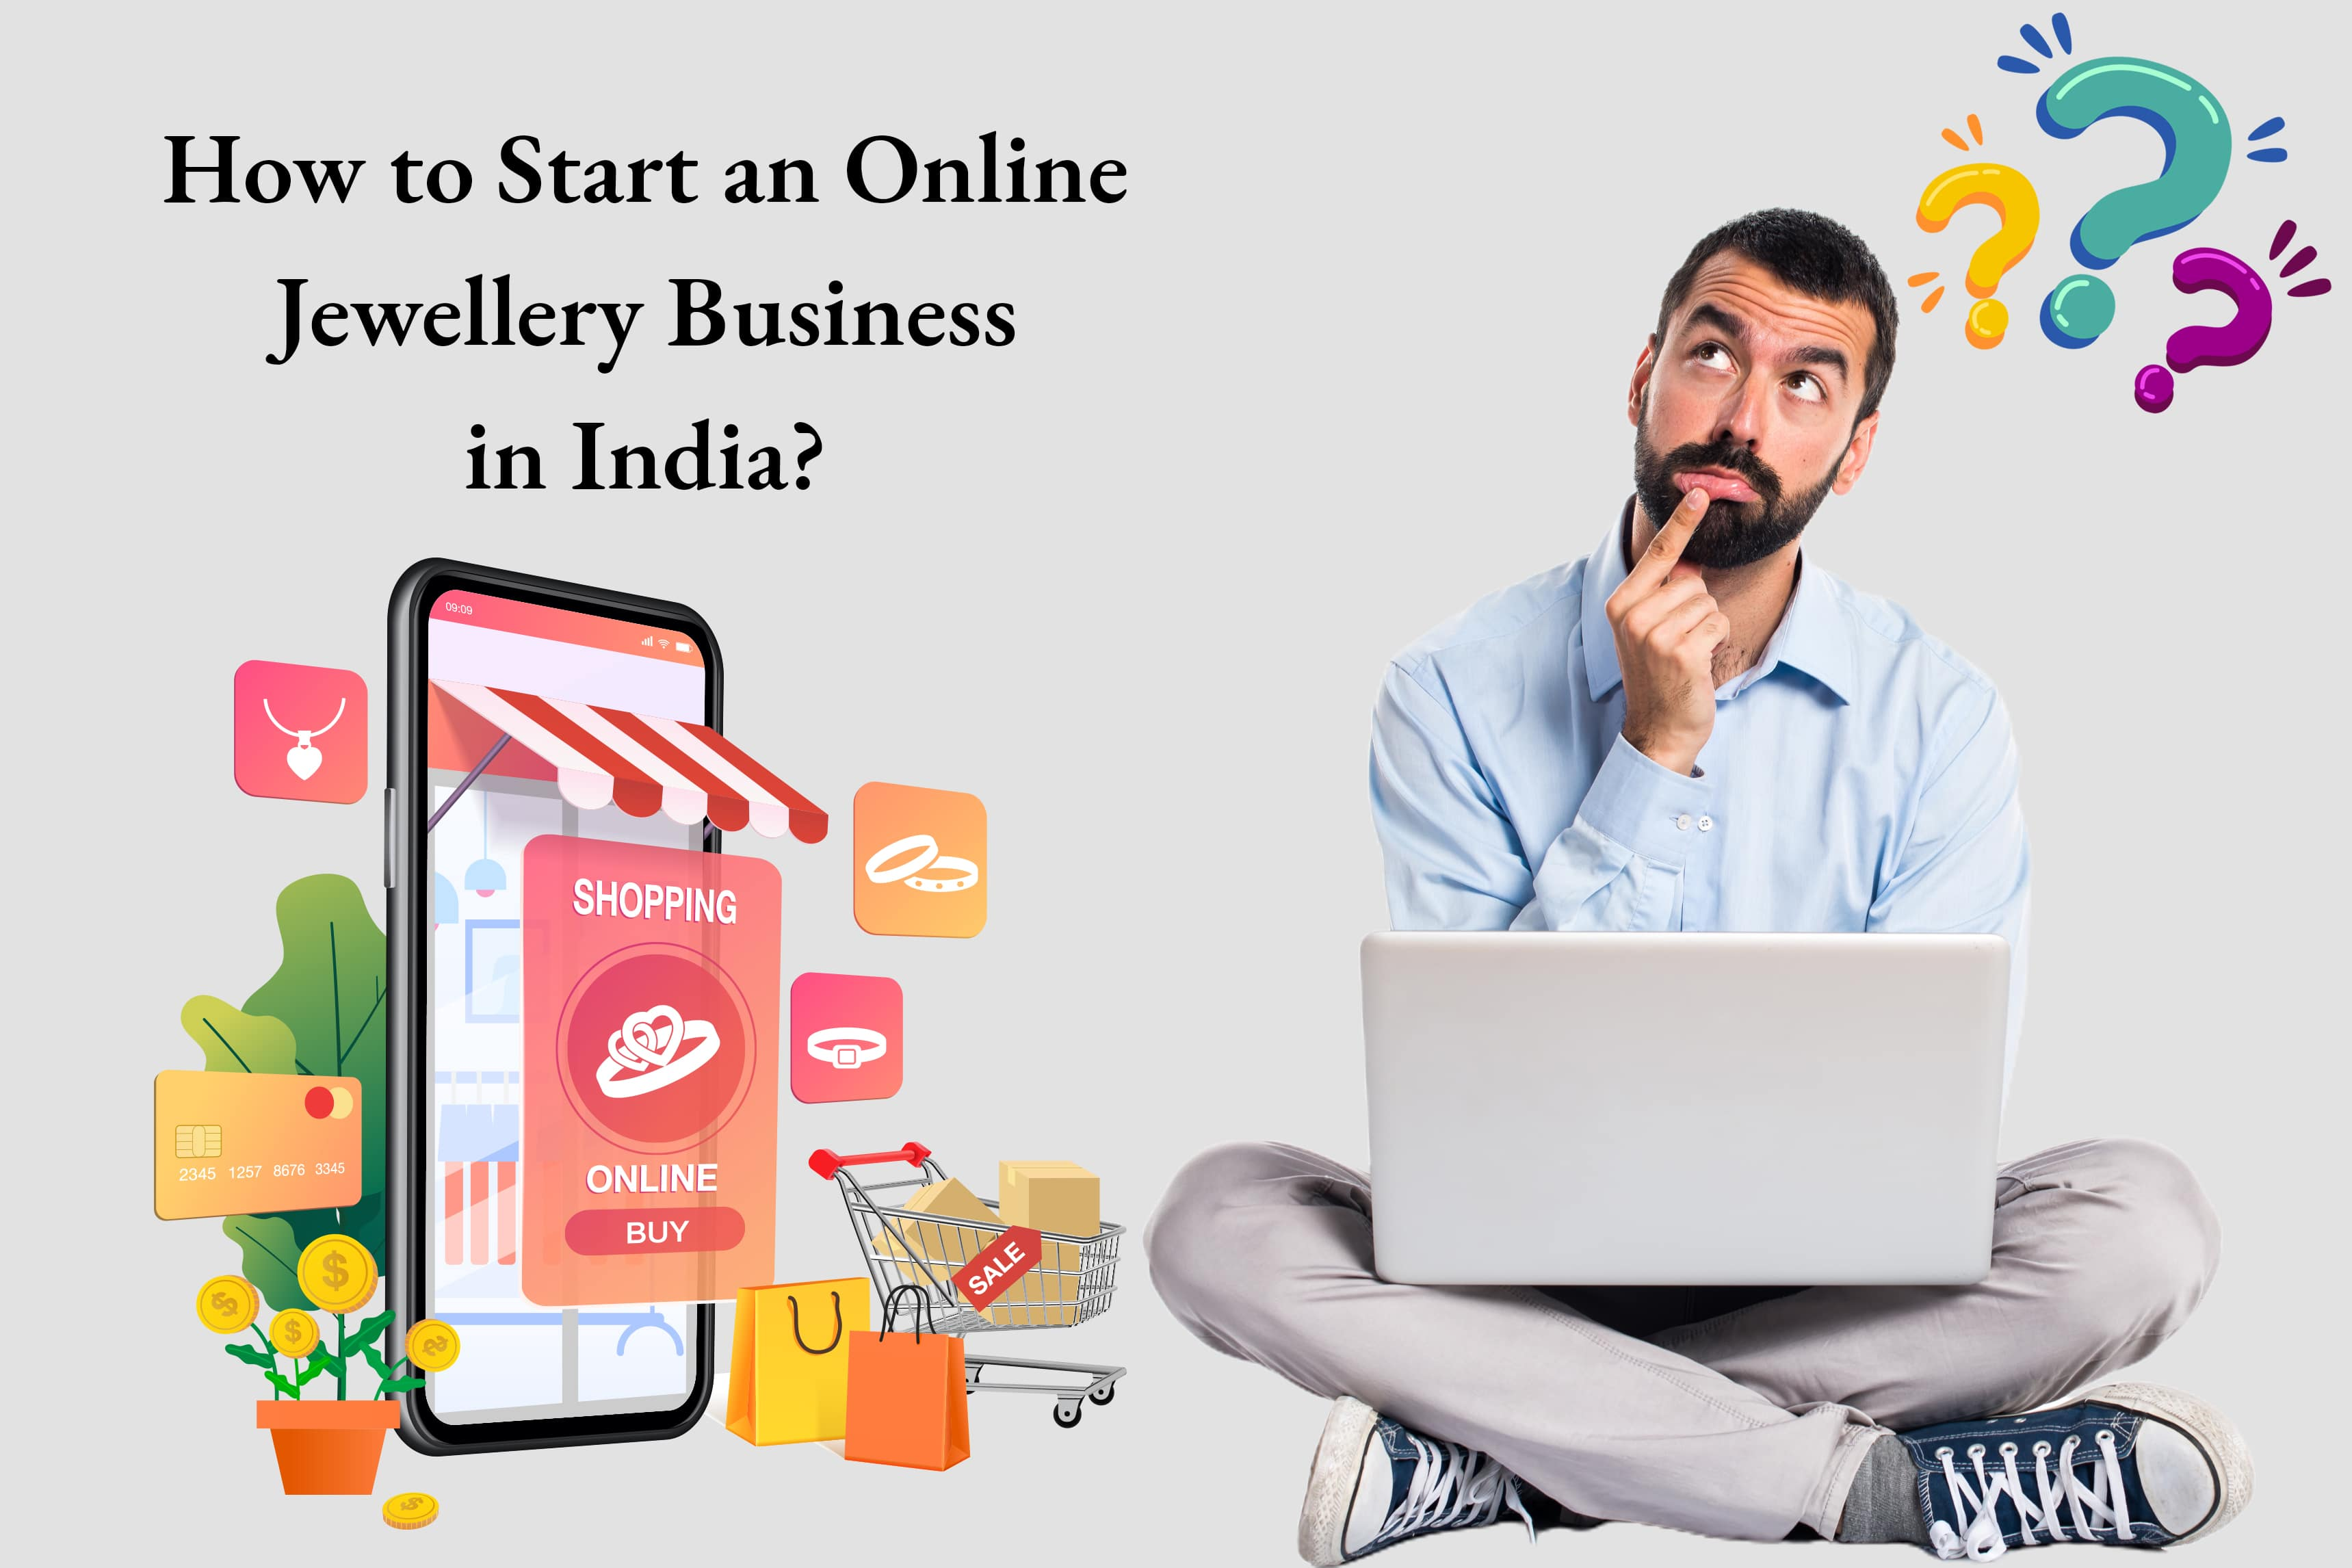 How to Start an Online Jewellery Business in India